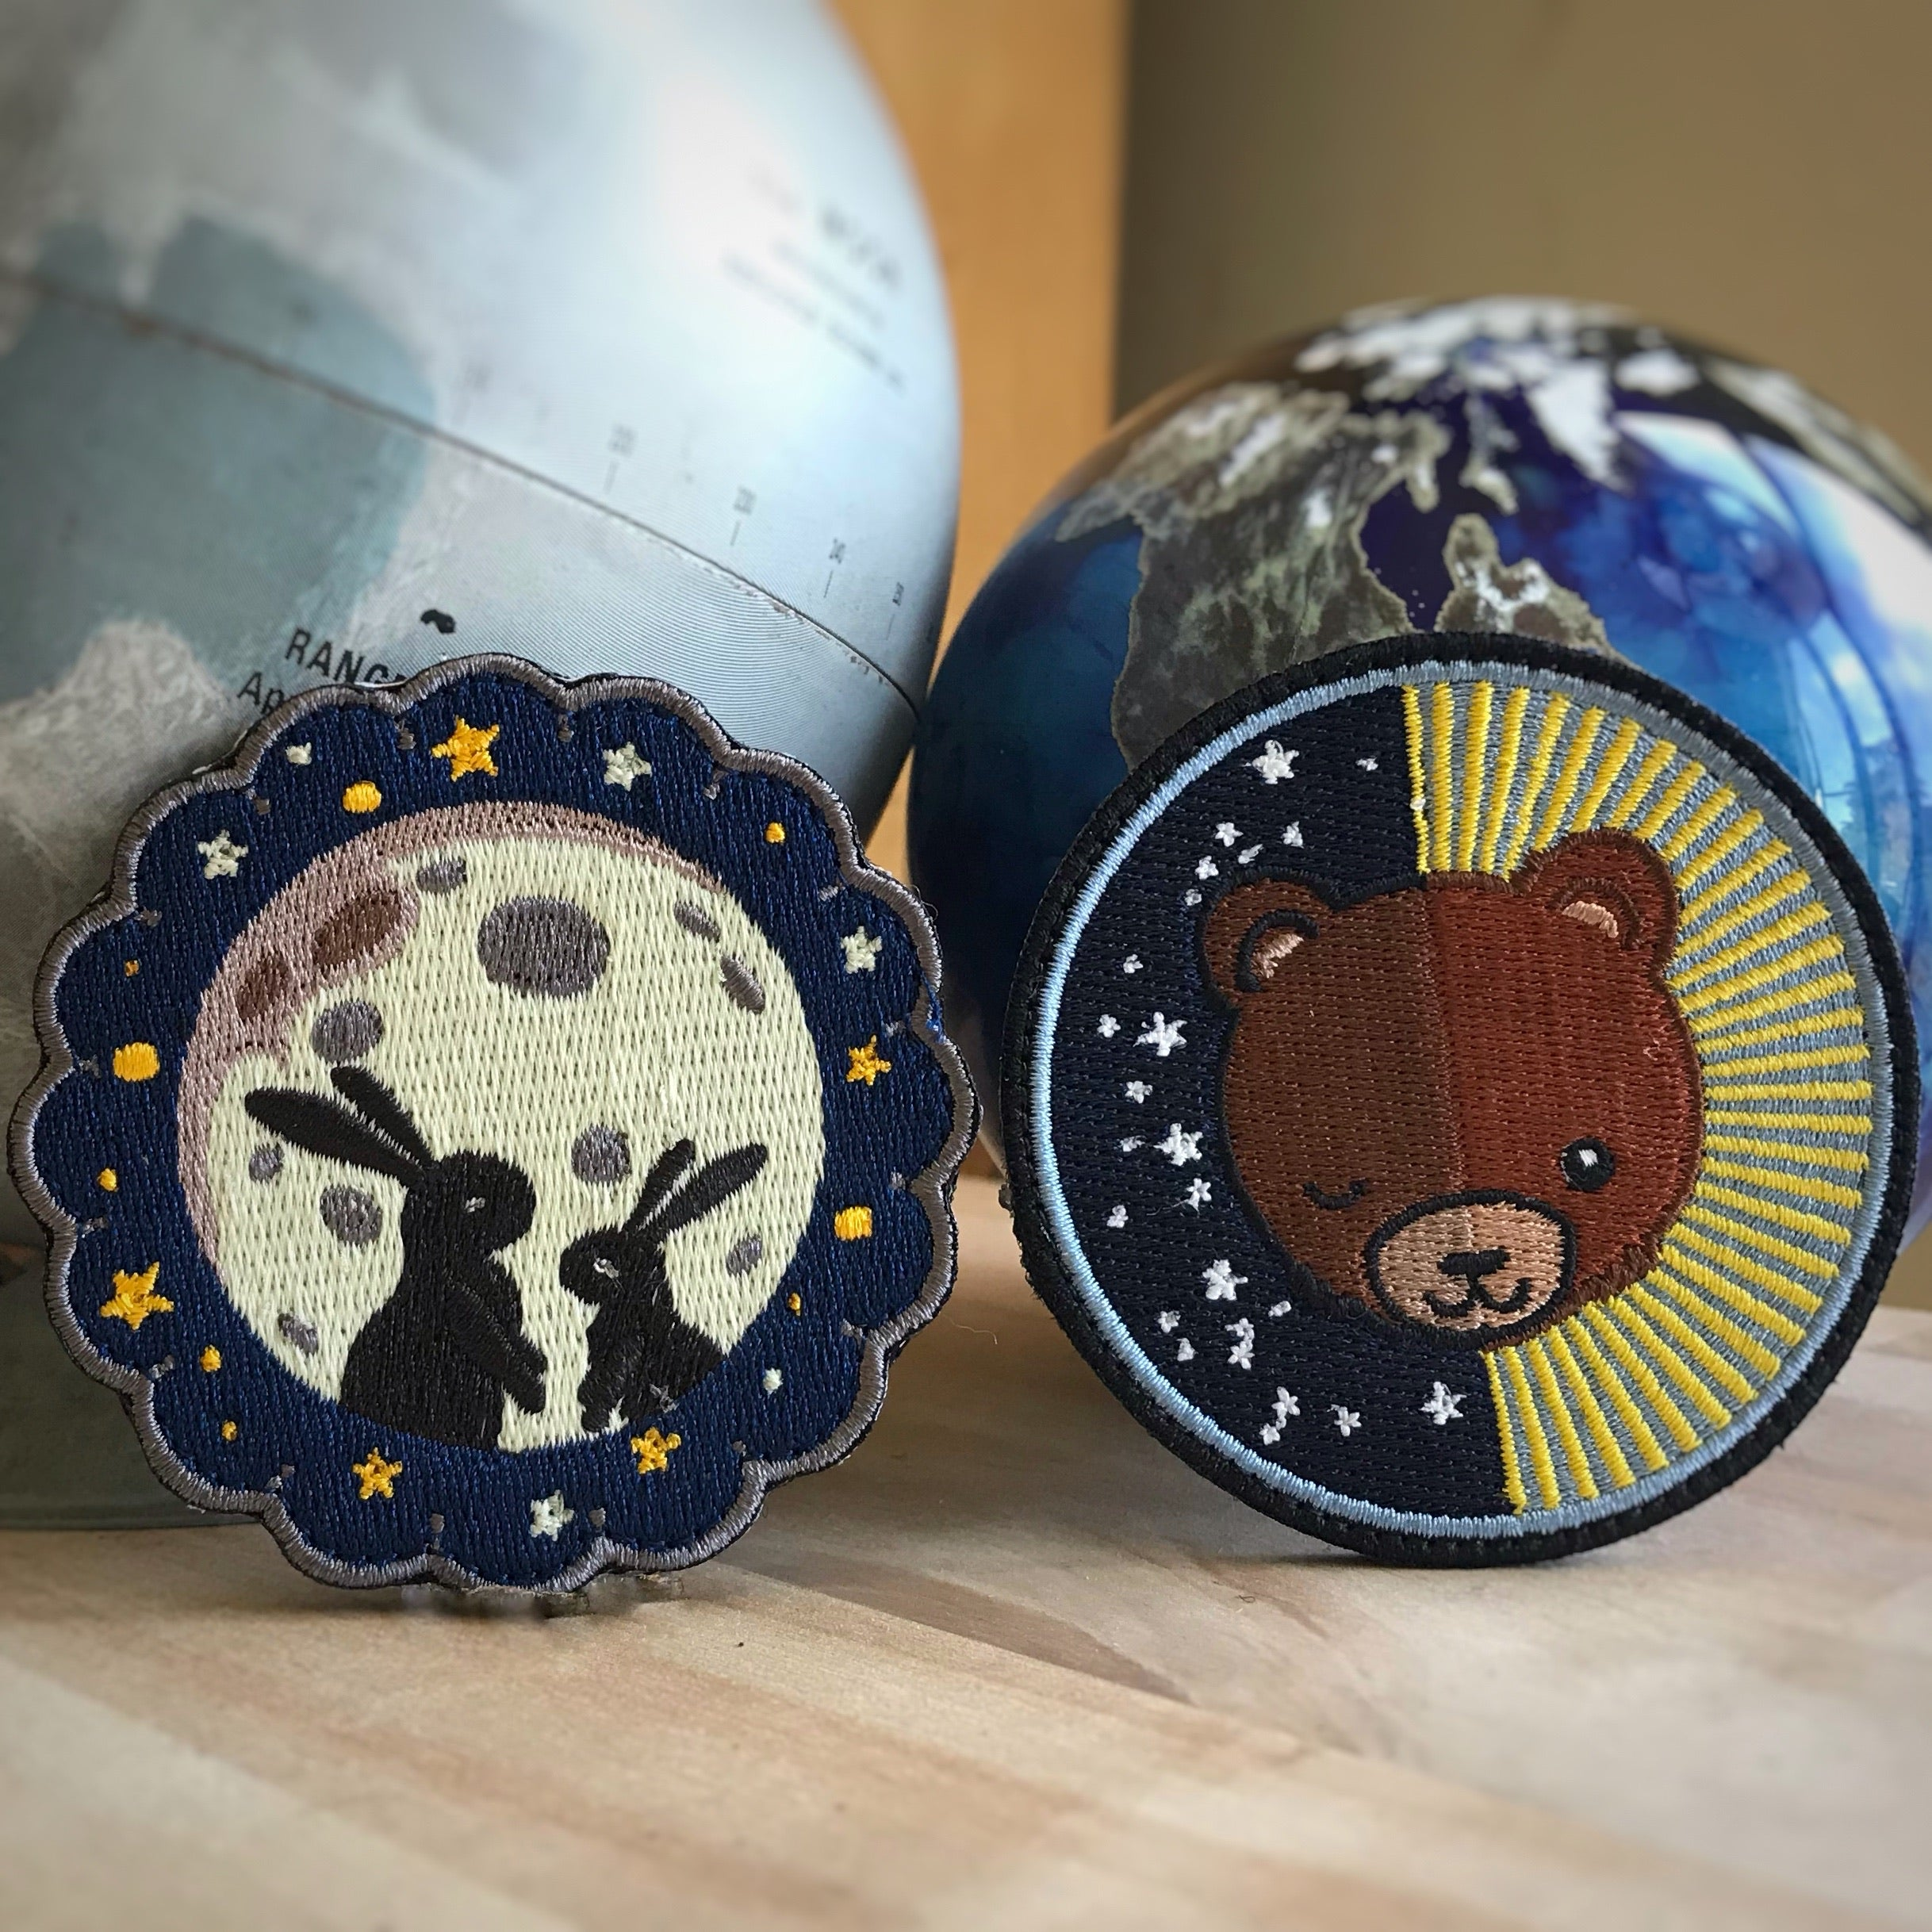 Autumn Moon Badge Collection